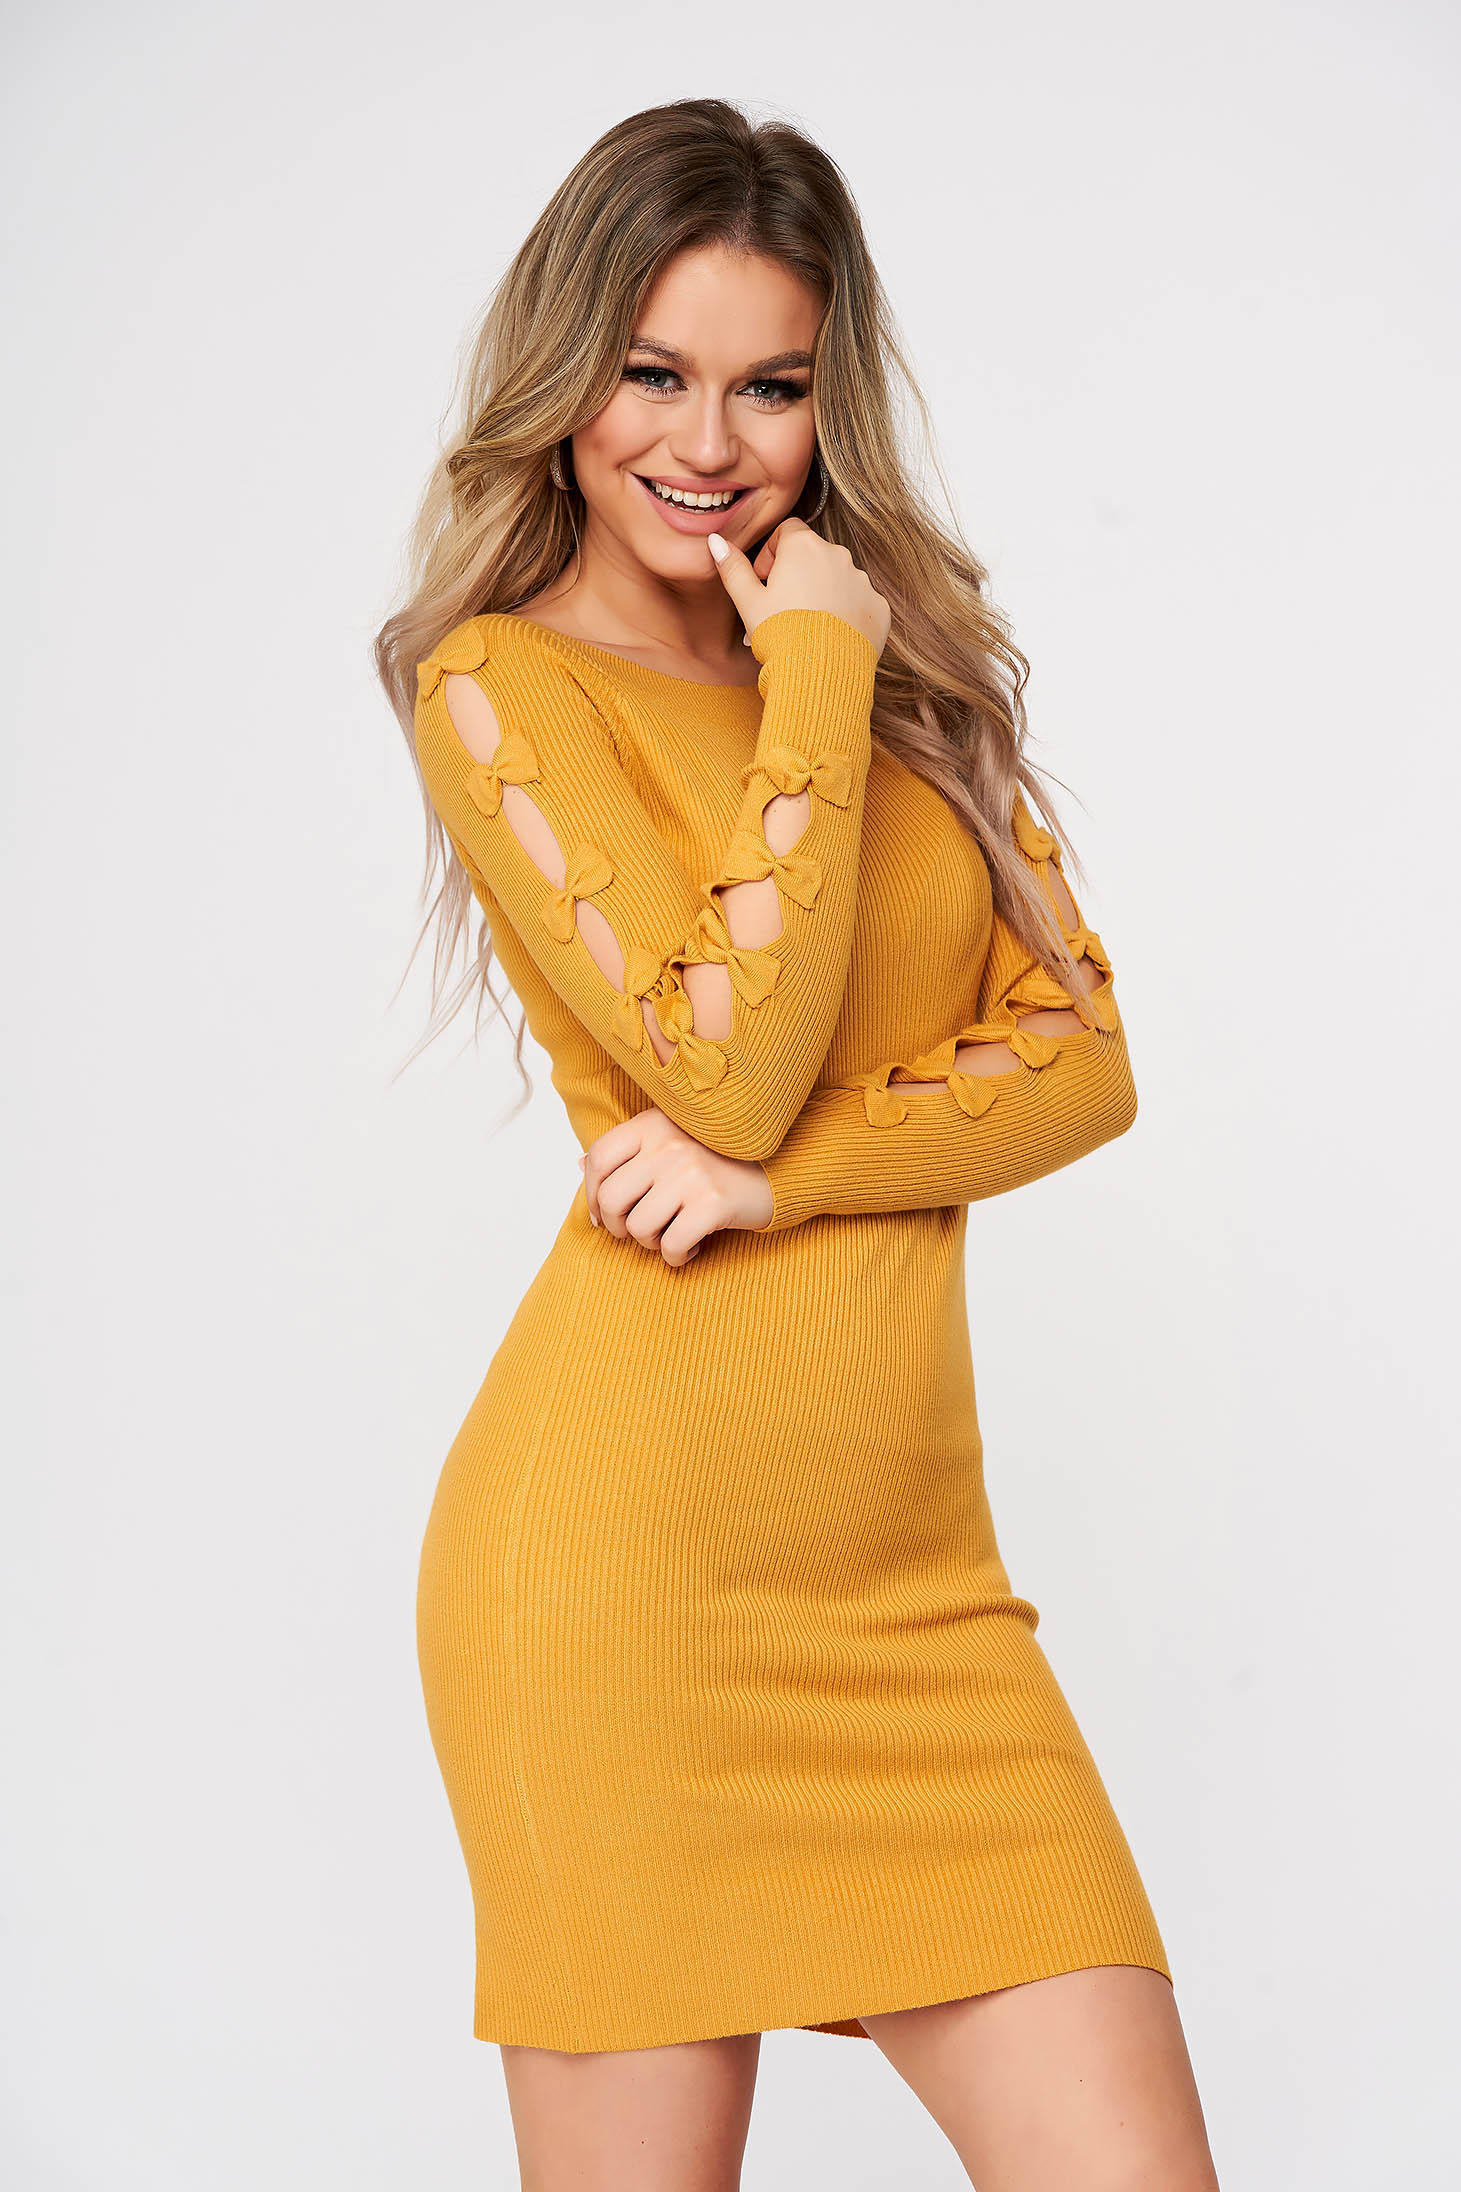 Yellow dress short cut daily pencil with cut-out sleeves with bow accessories from striped fabric